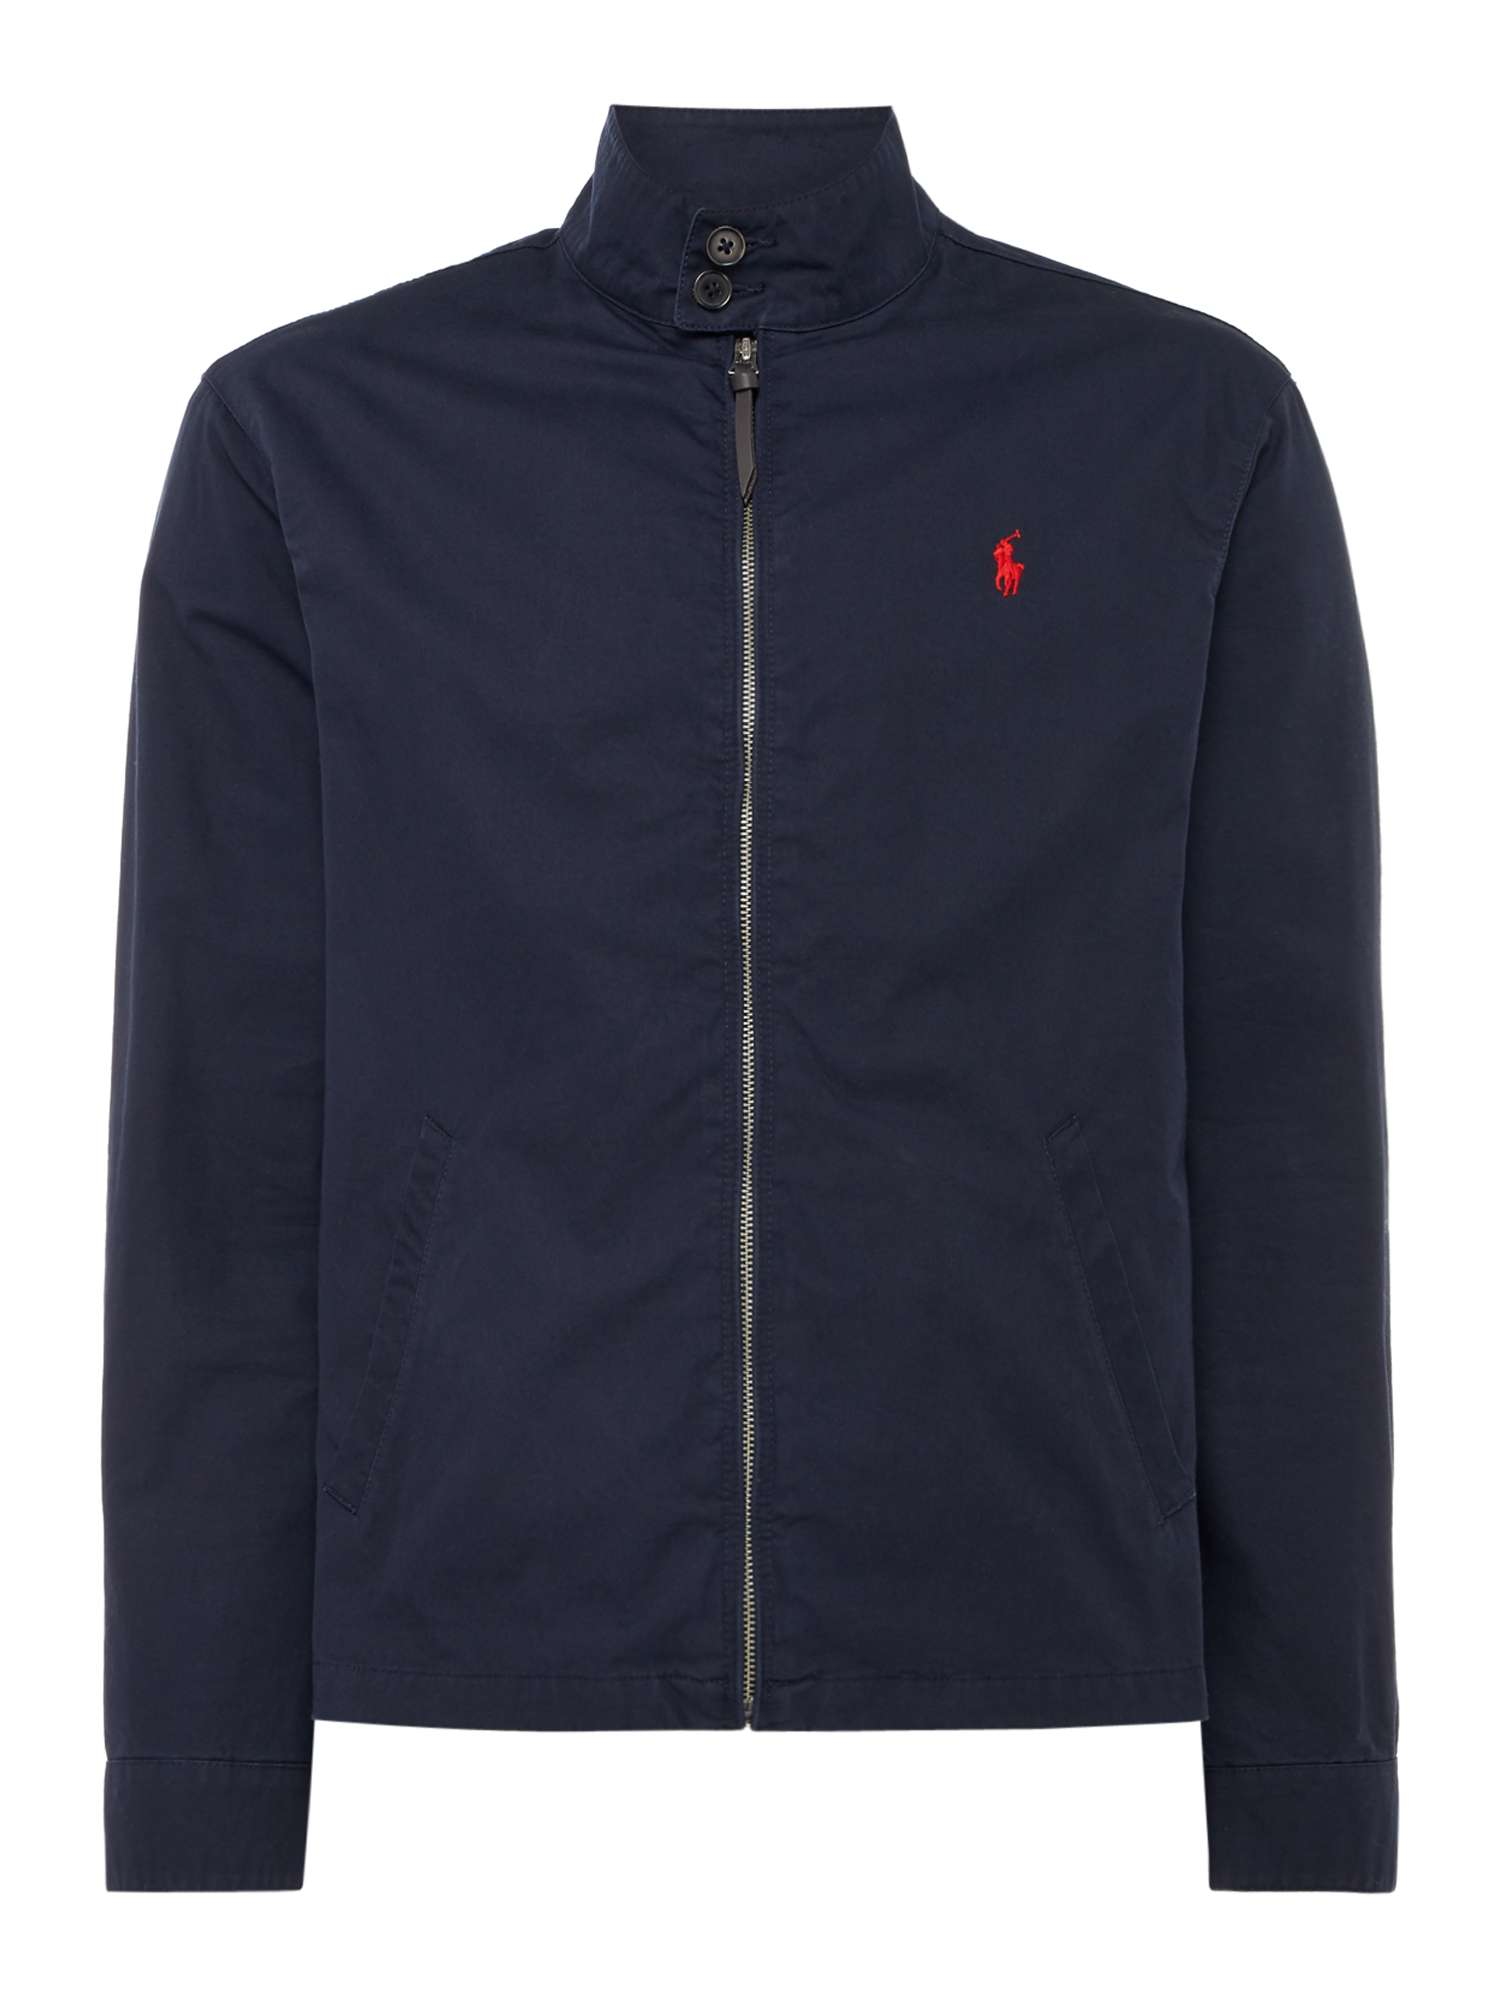 Polo Ralph Lauren Men s Coats and Jackets - House of Fraser 4fcb87152ff